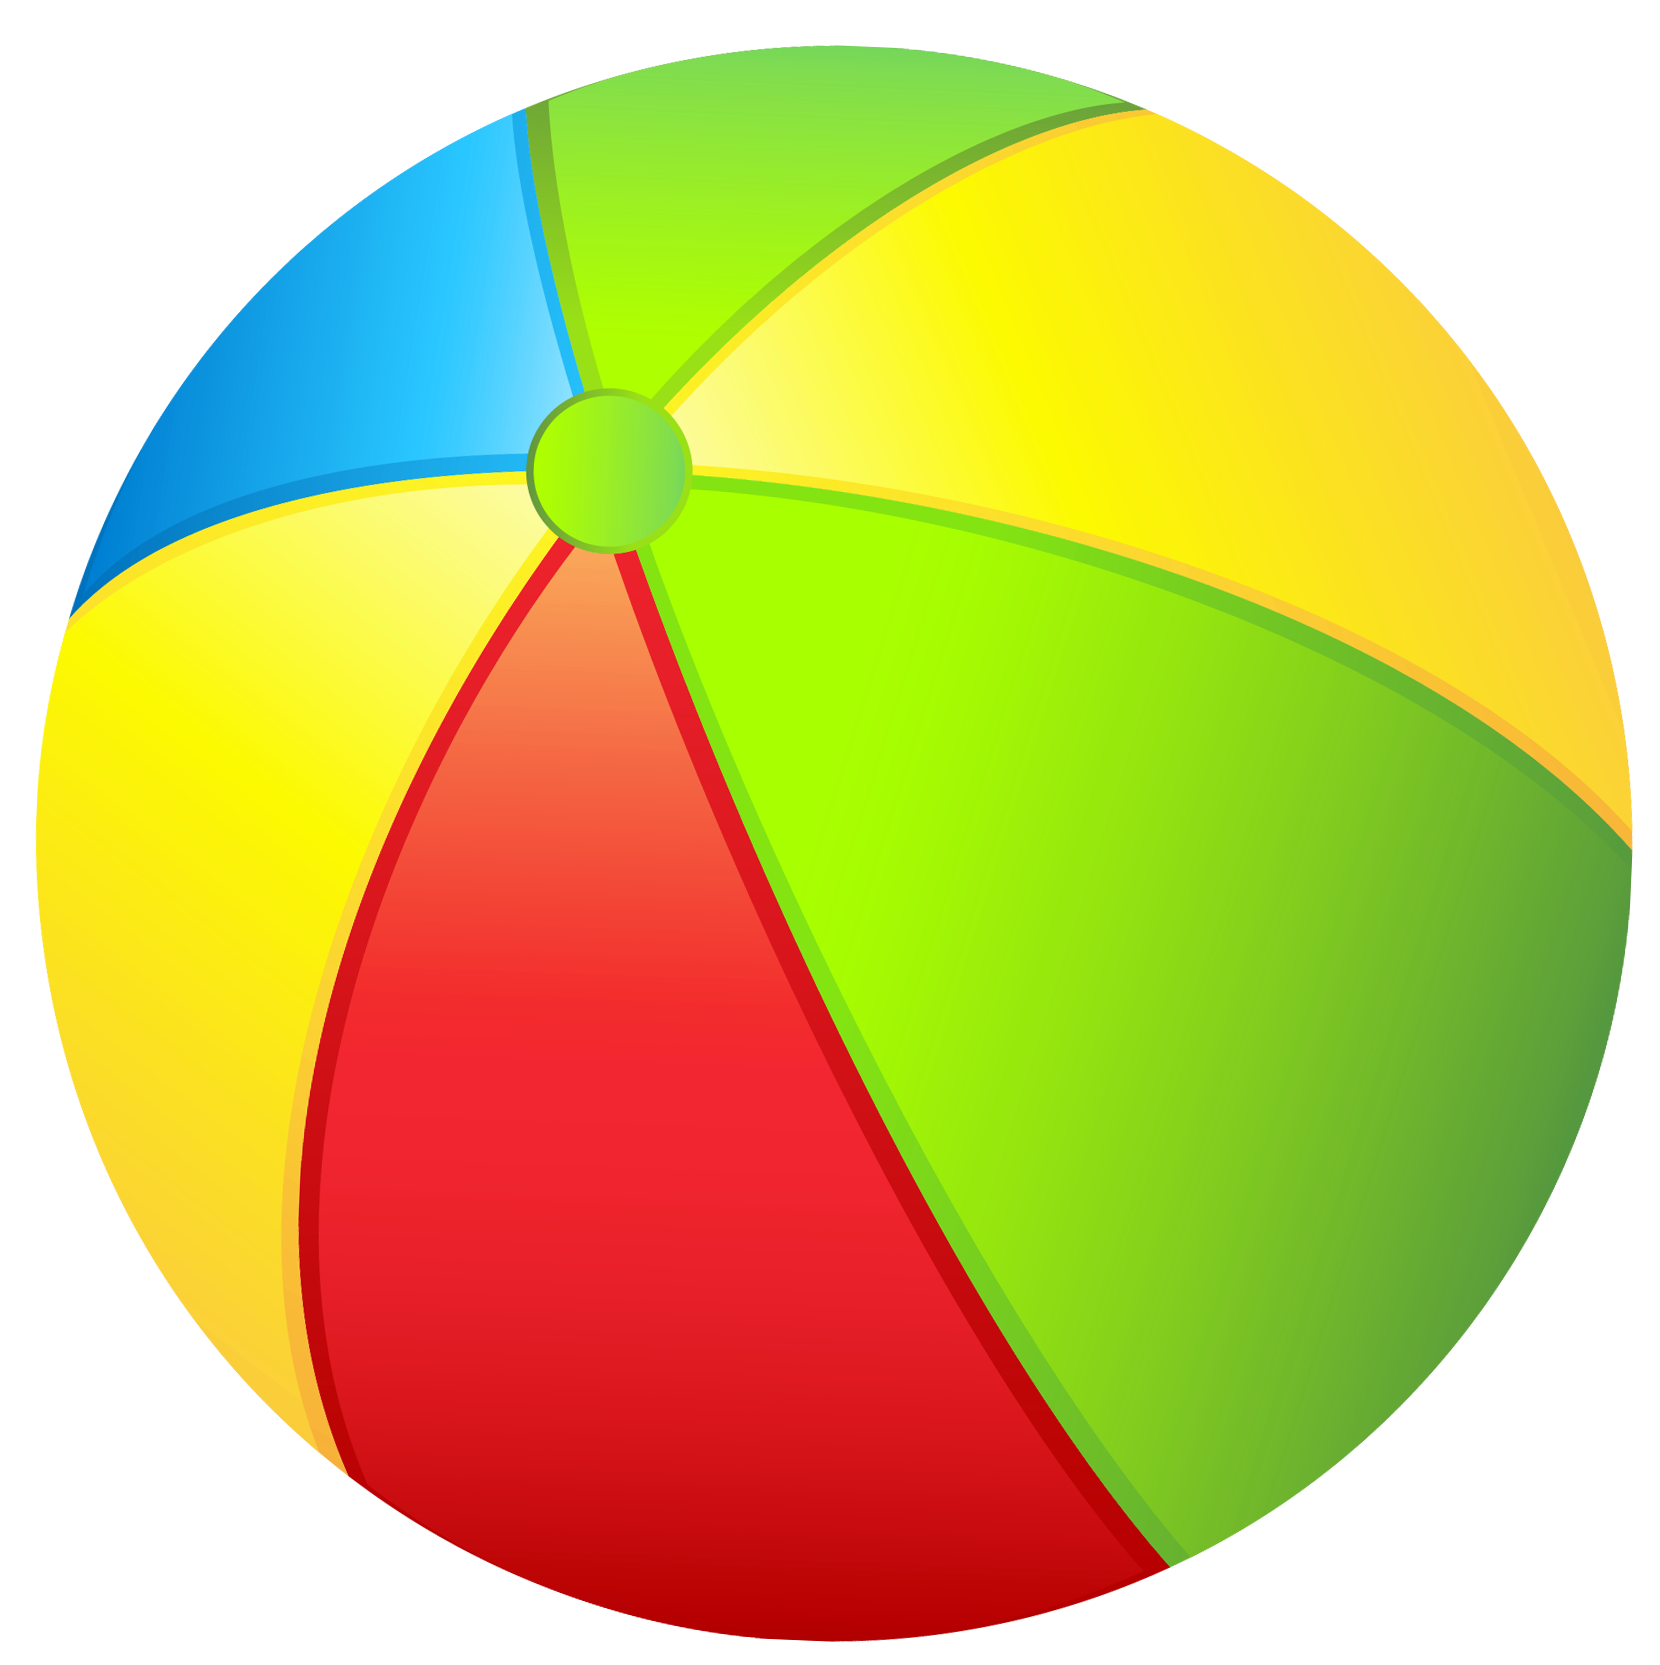 Free beach ball clipart free clip art image image